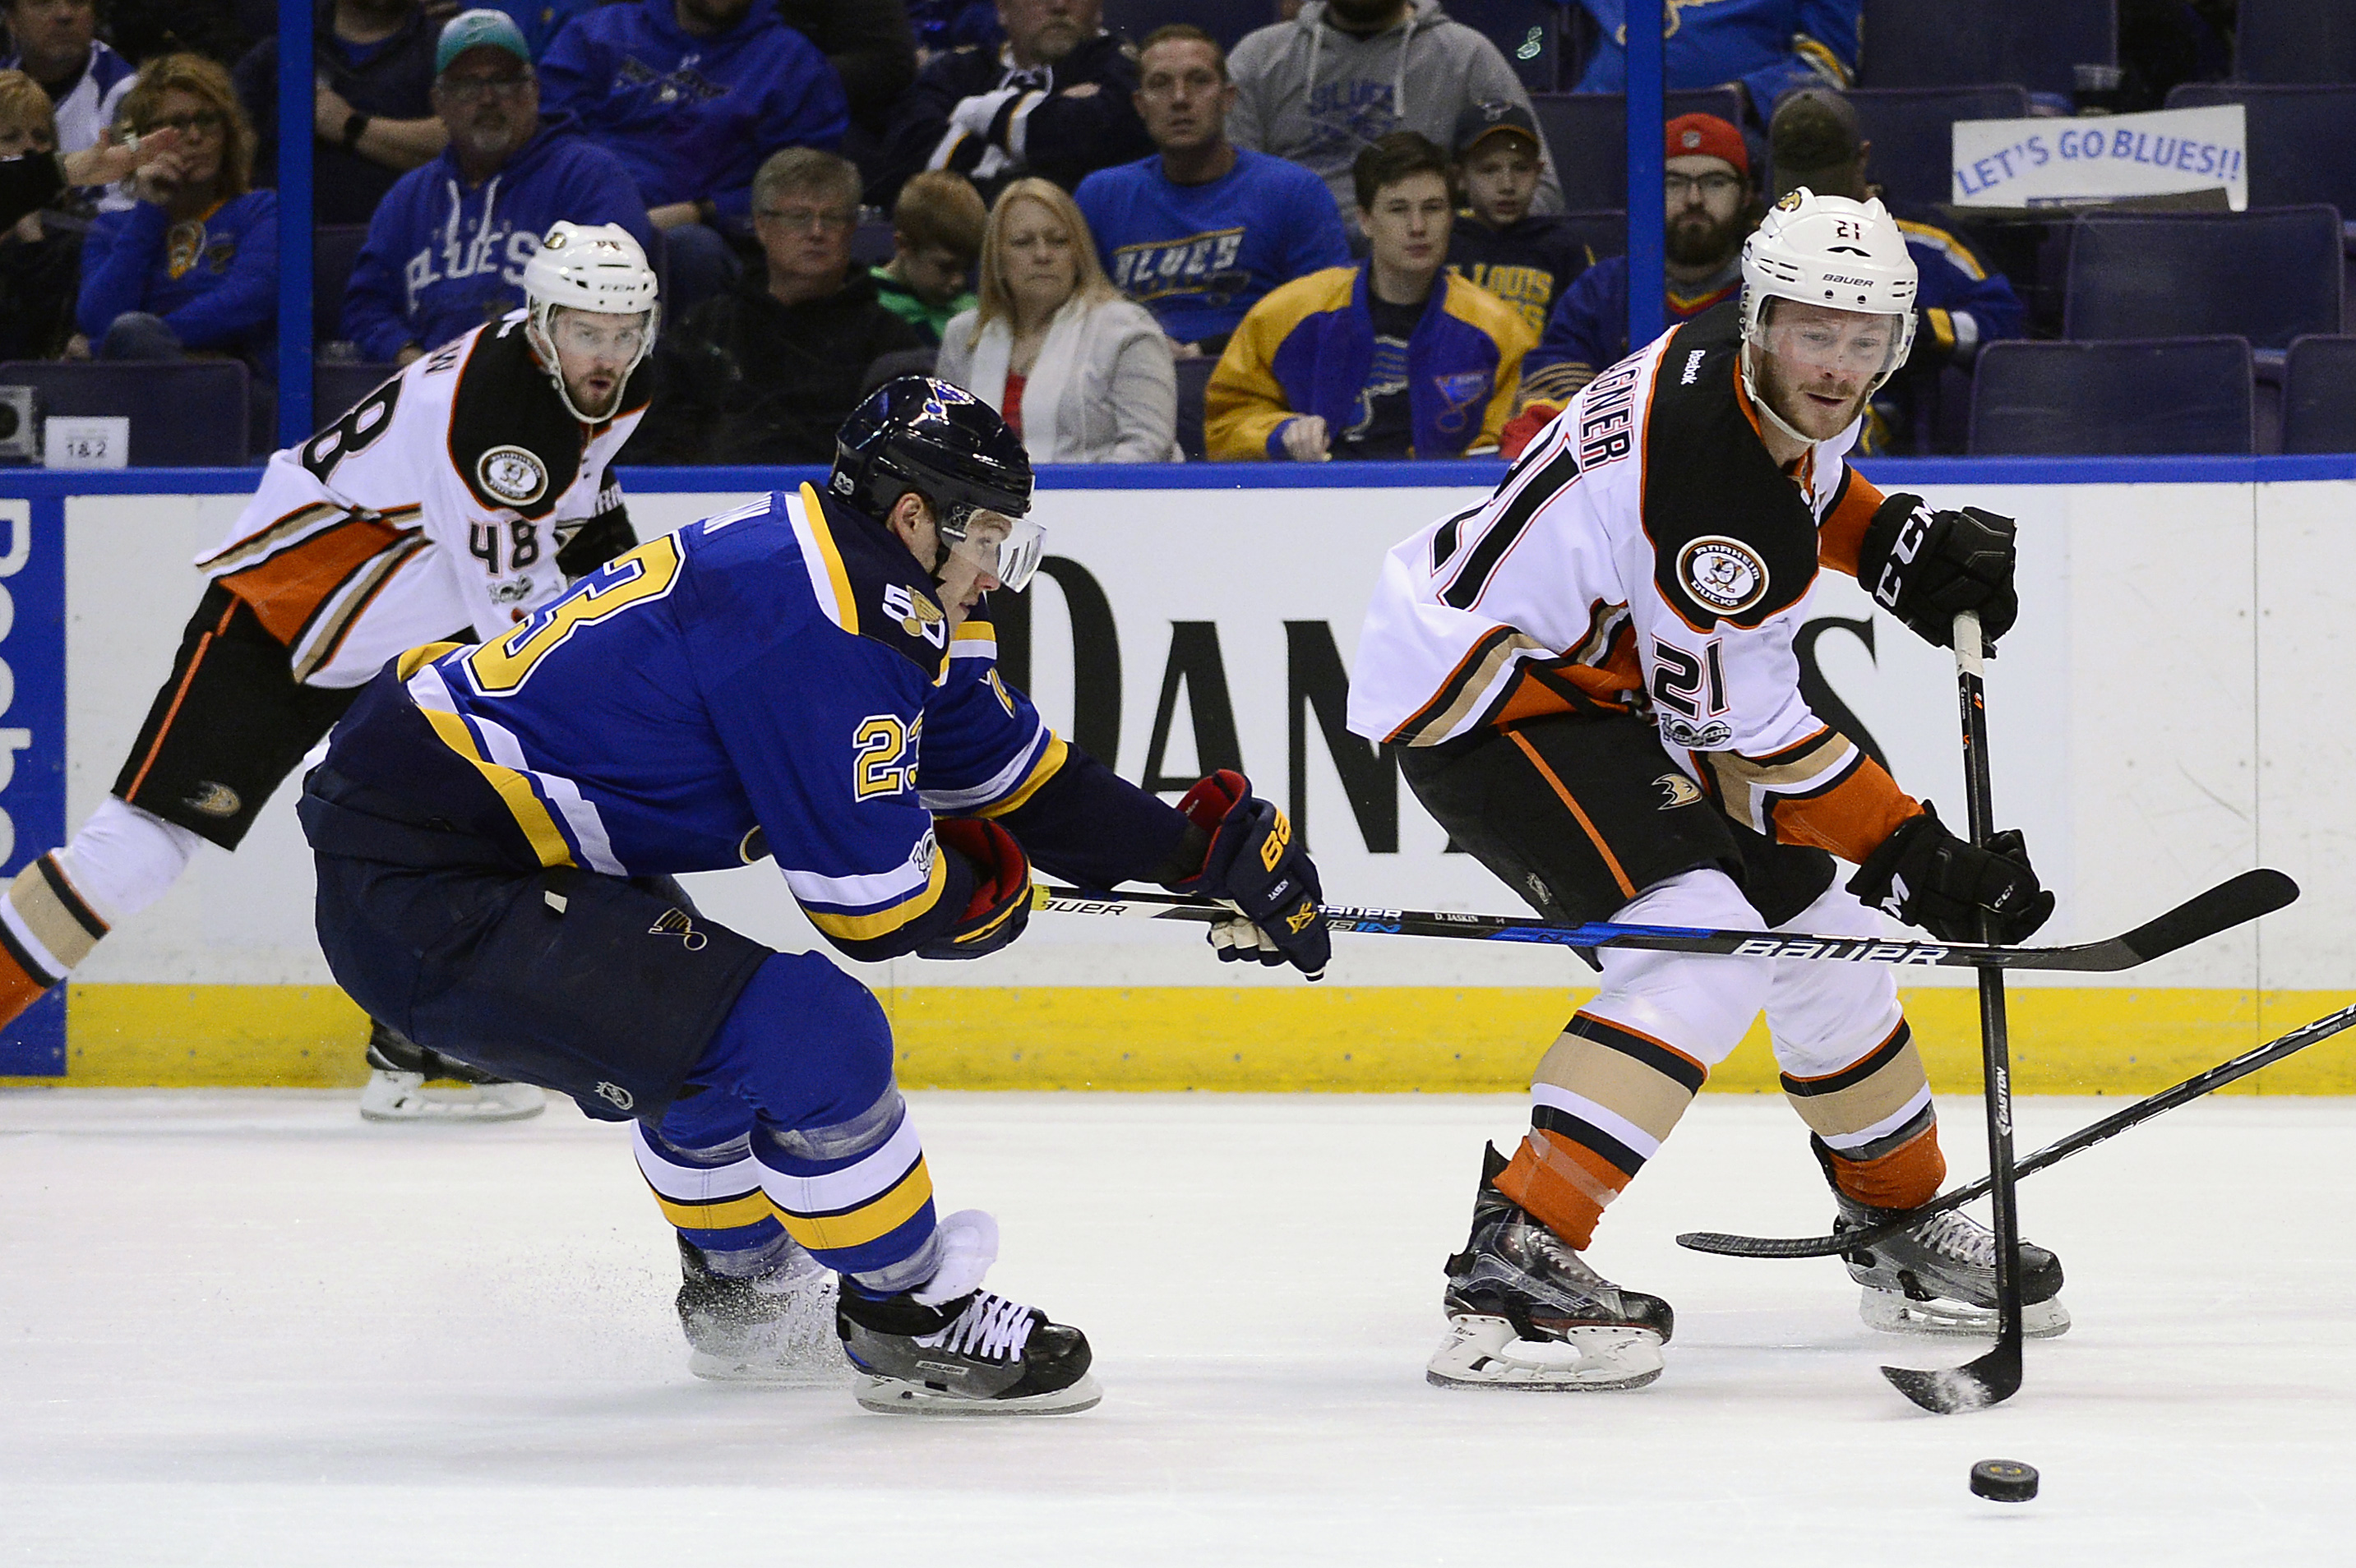 9932131-nhl-anaheim-ducks-at-st.-louis-blues